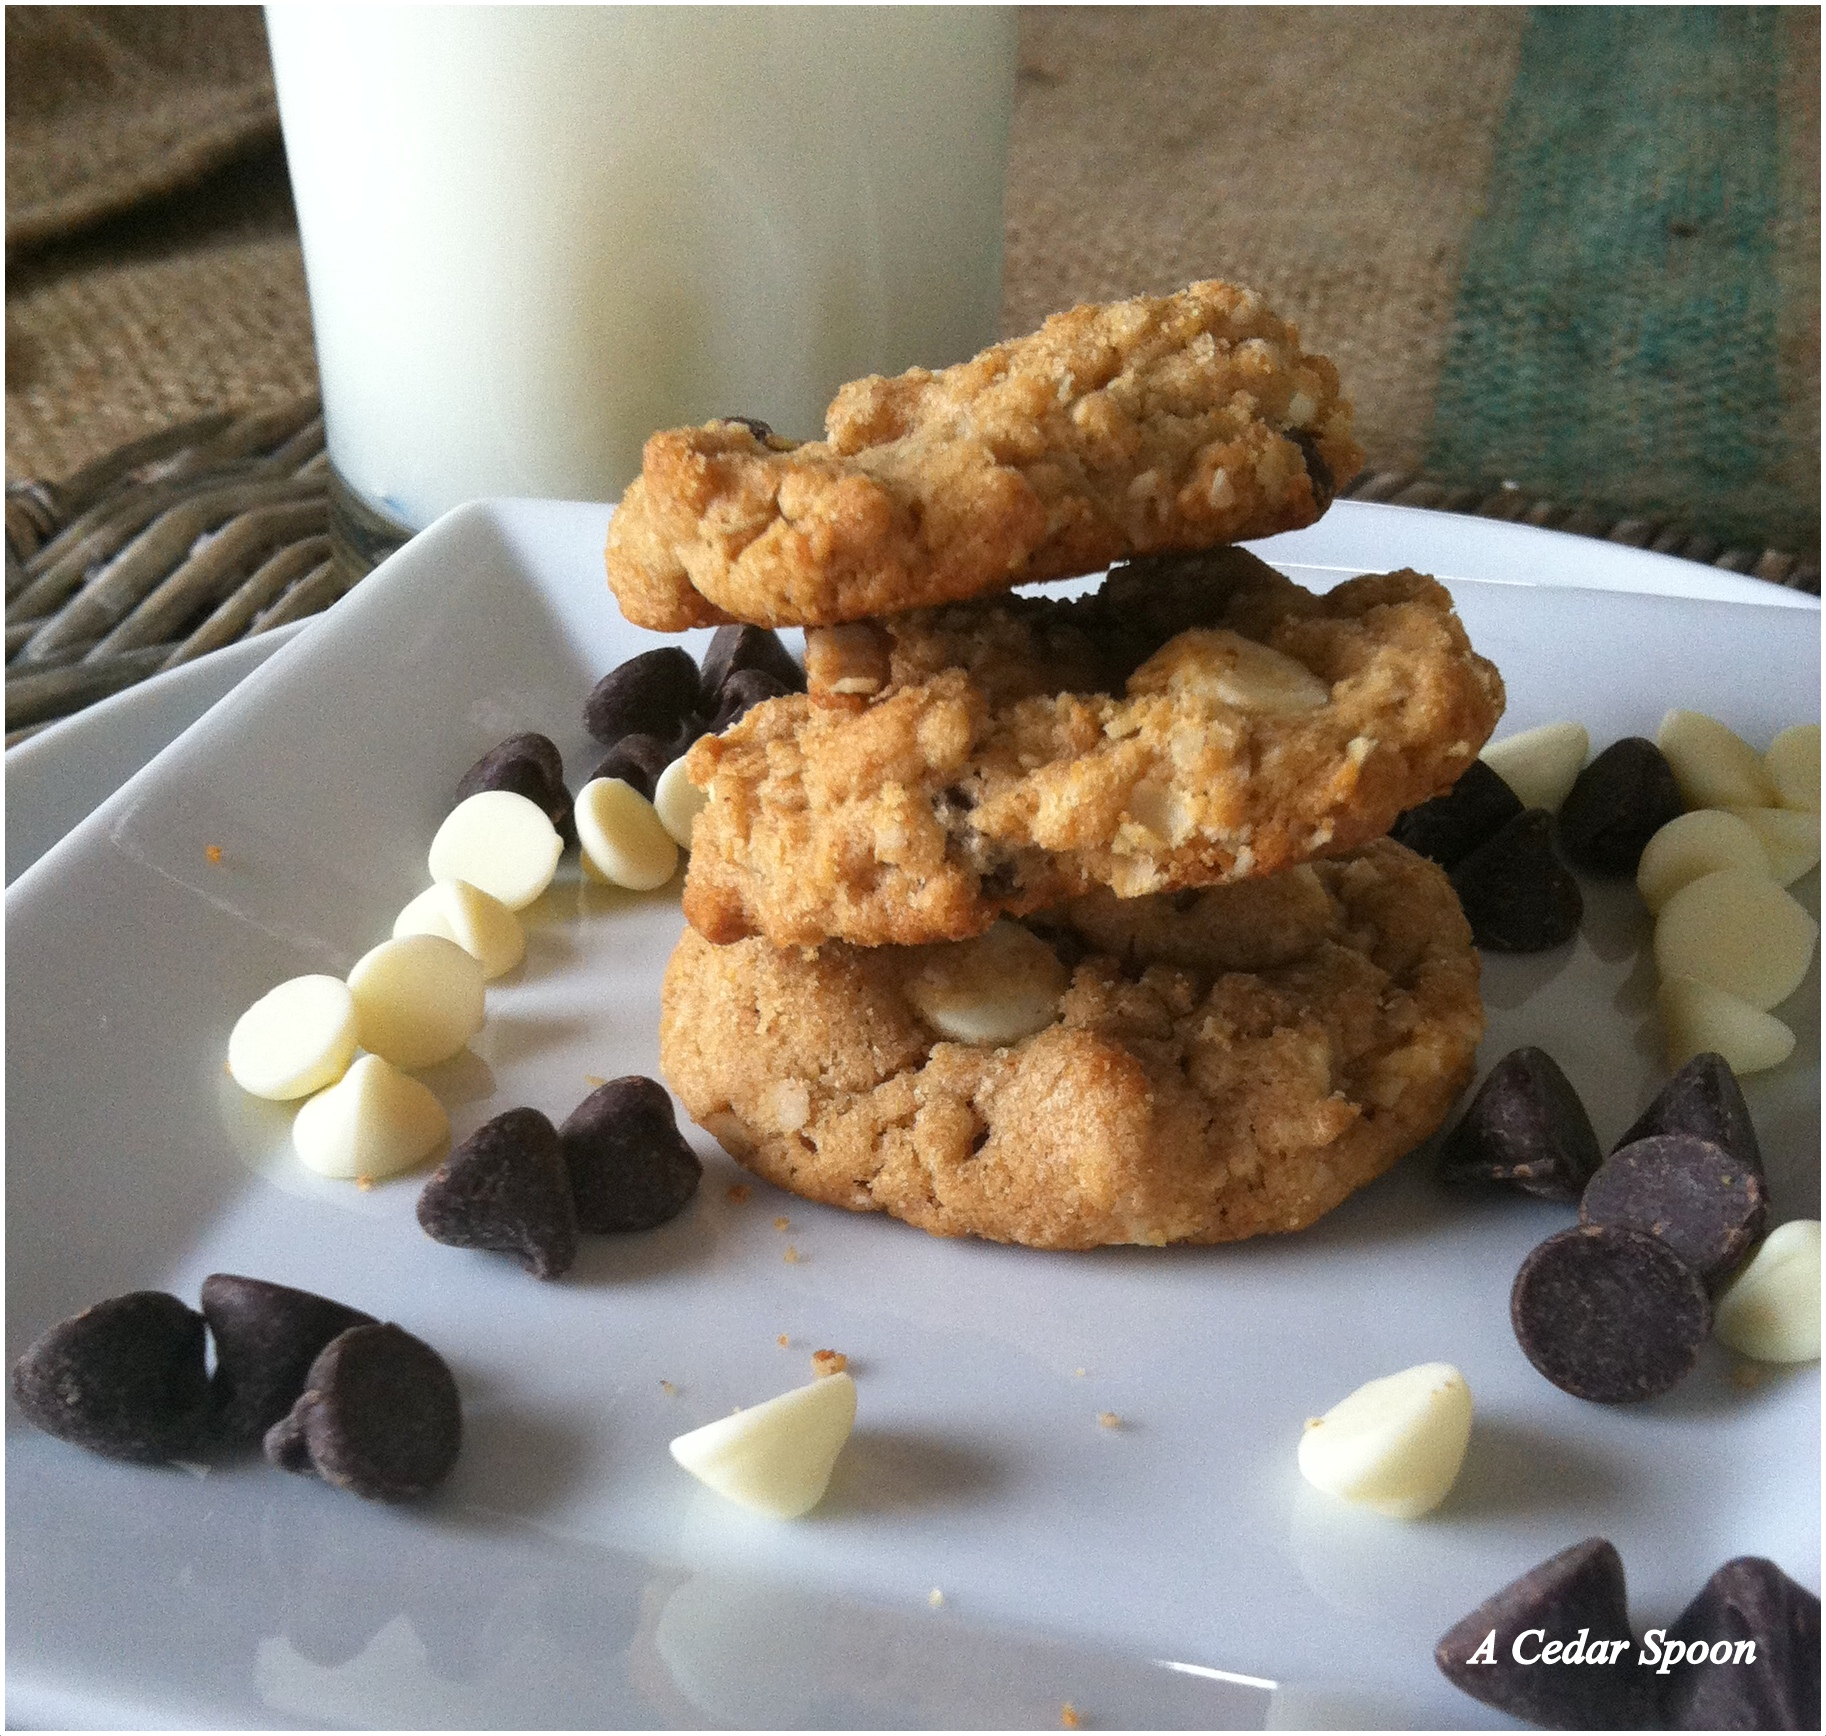 Peanut Butter Oatmeal Two Chip Cookies recipe from A Cedar Spoon